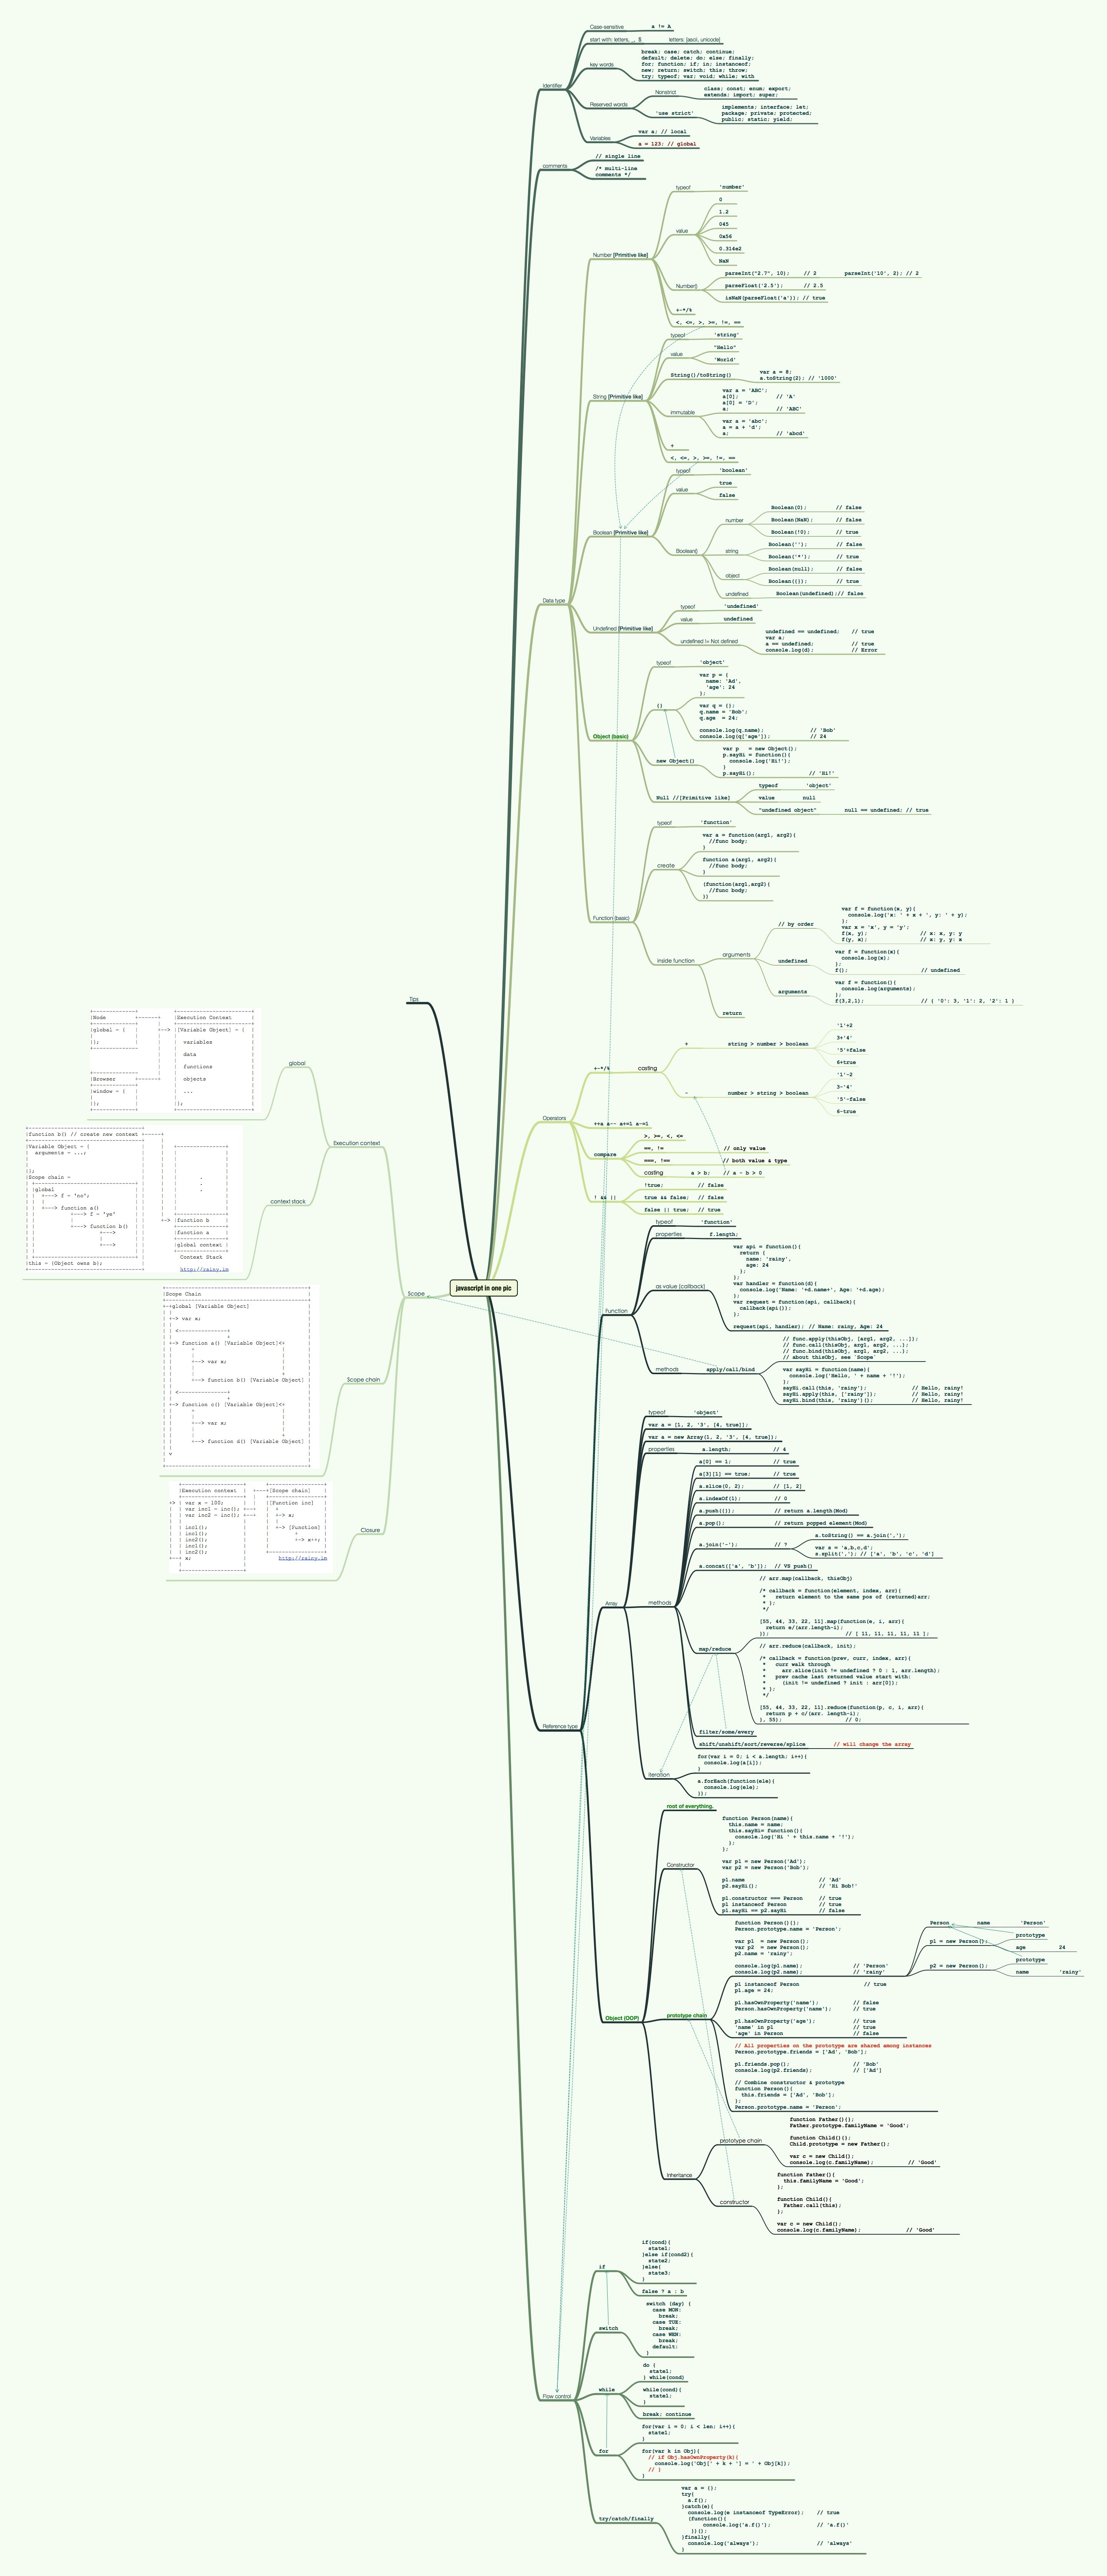 Infographic The Entire Javascript Language In One Single Image